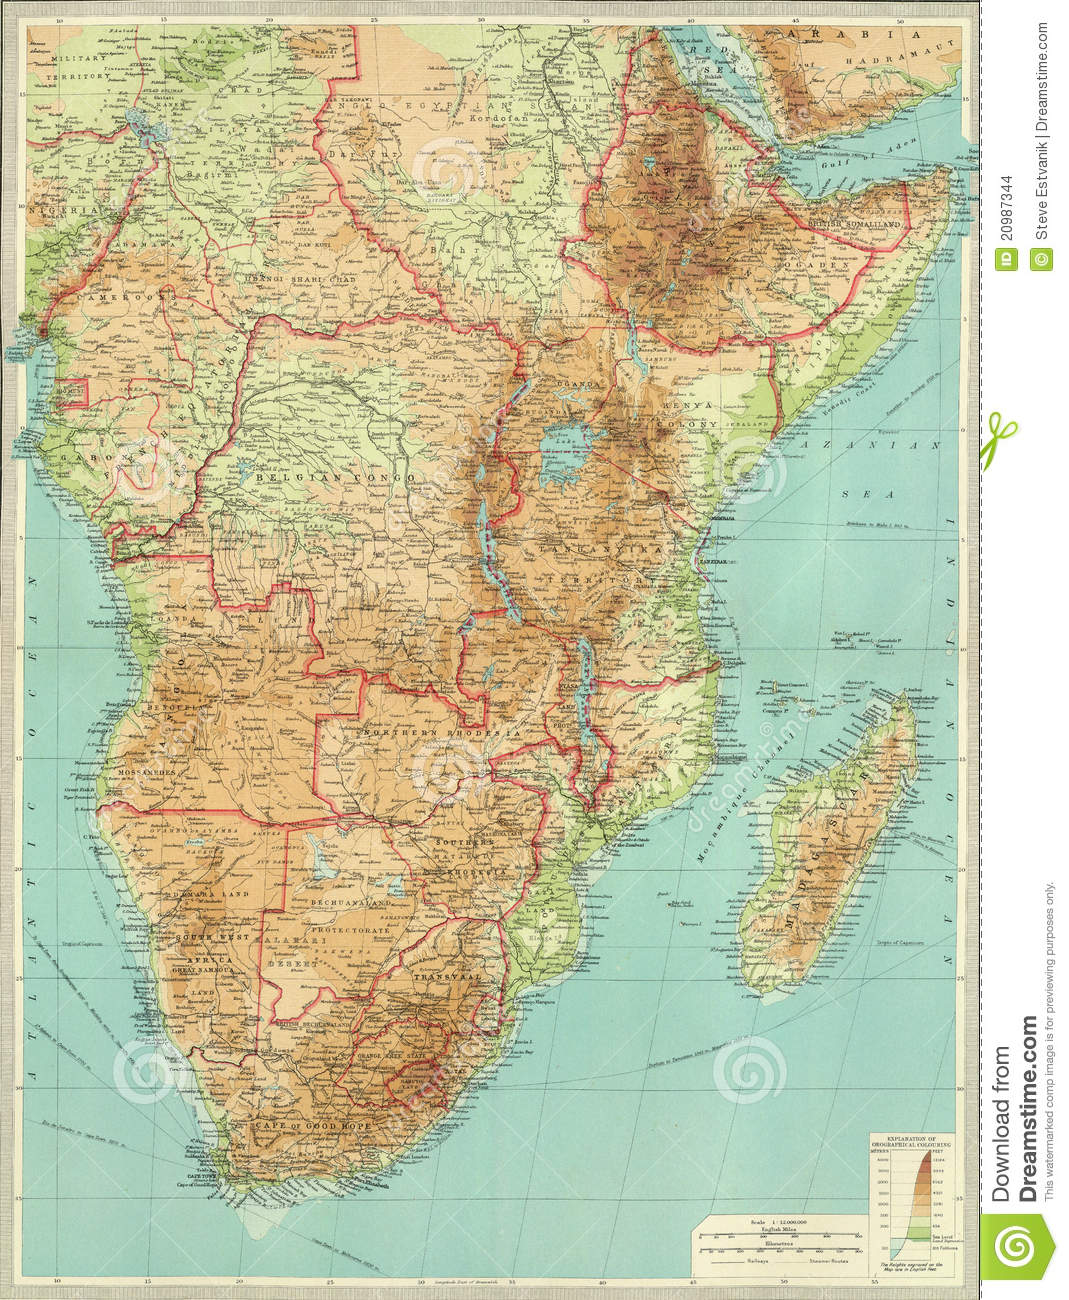 antique maps of africa with Stock Images Antique Map Central Southern Africa Image20987344 on Oder also Es 195045IN also Es 1936IndiaTZ additionally Stock Images Antique Map Central Southern Africa Image20987344 also Physical Map.